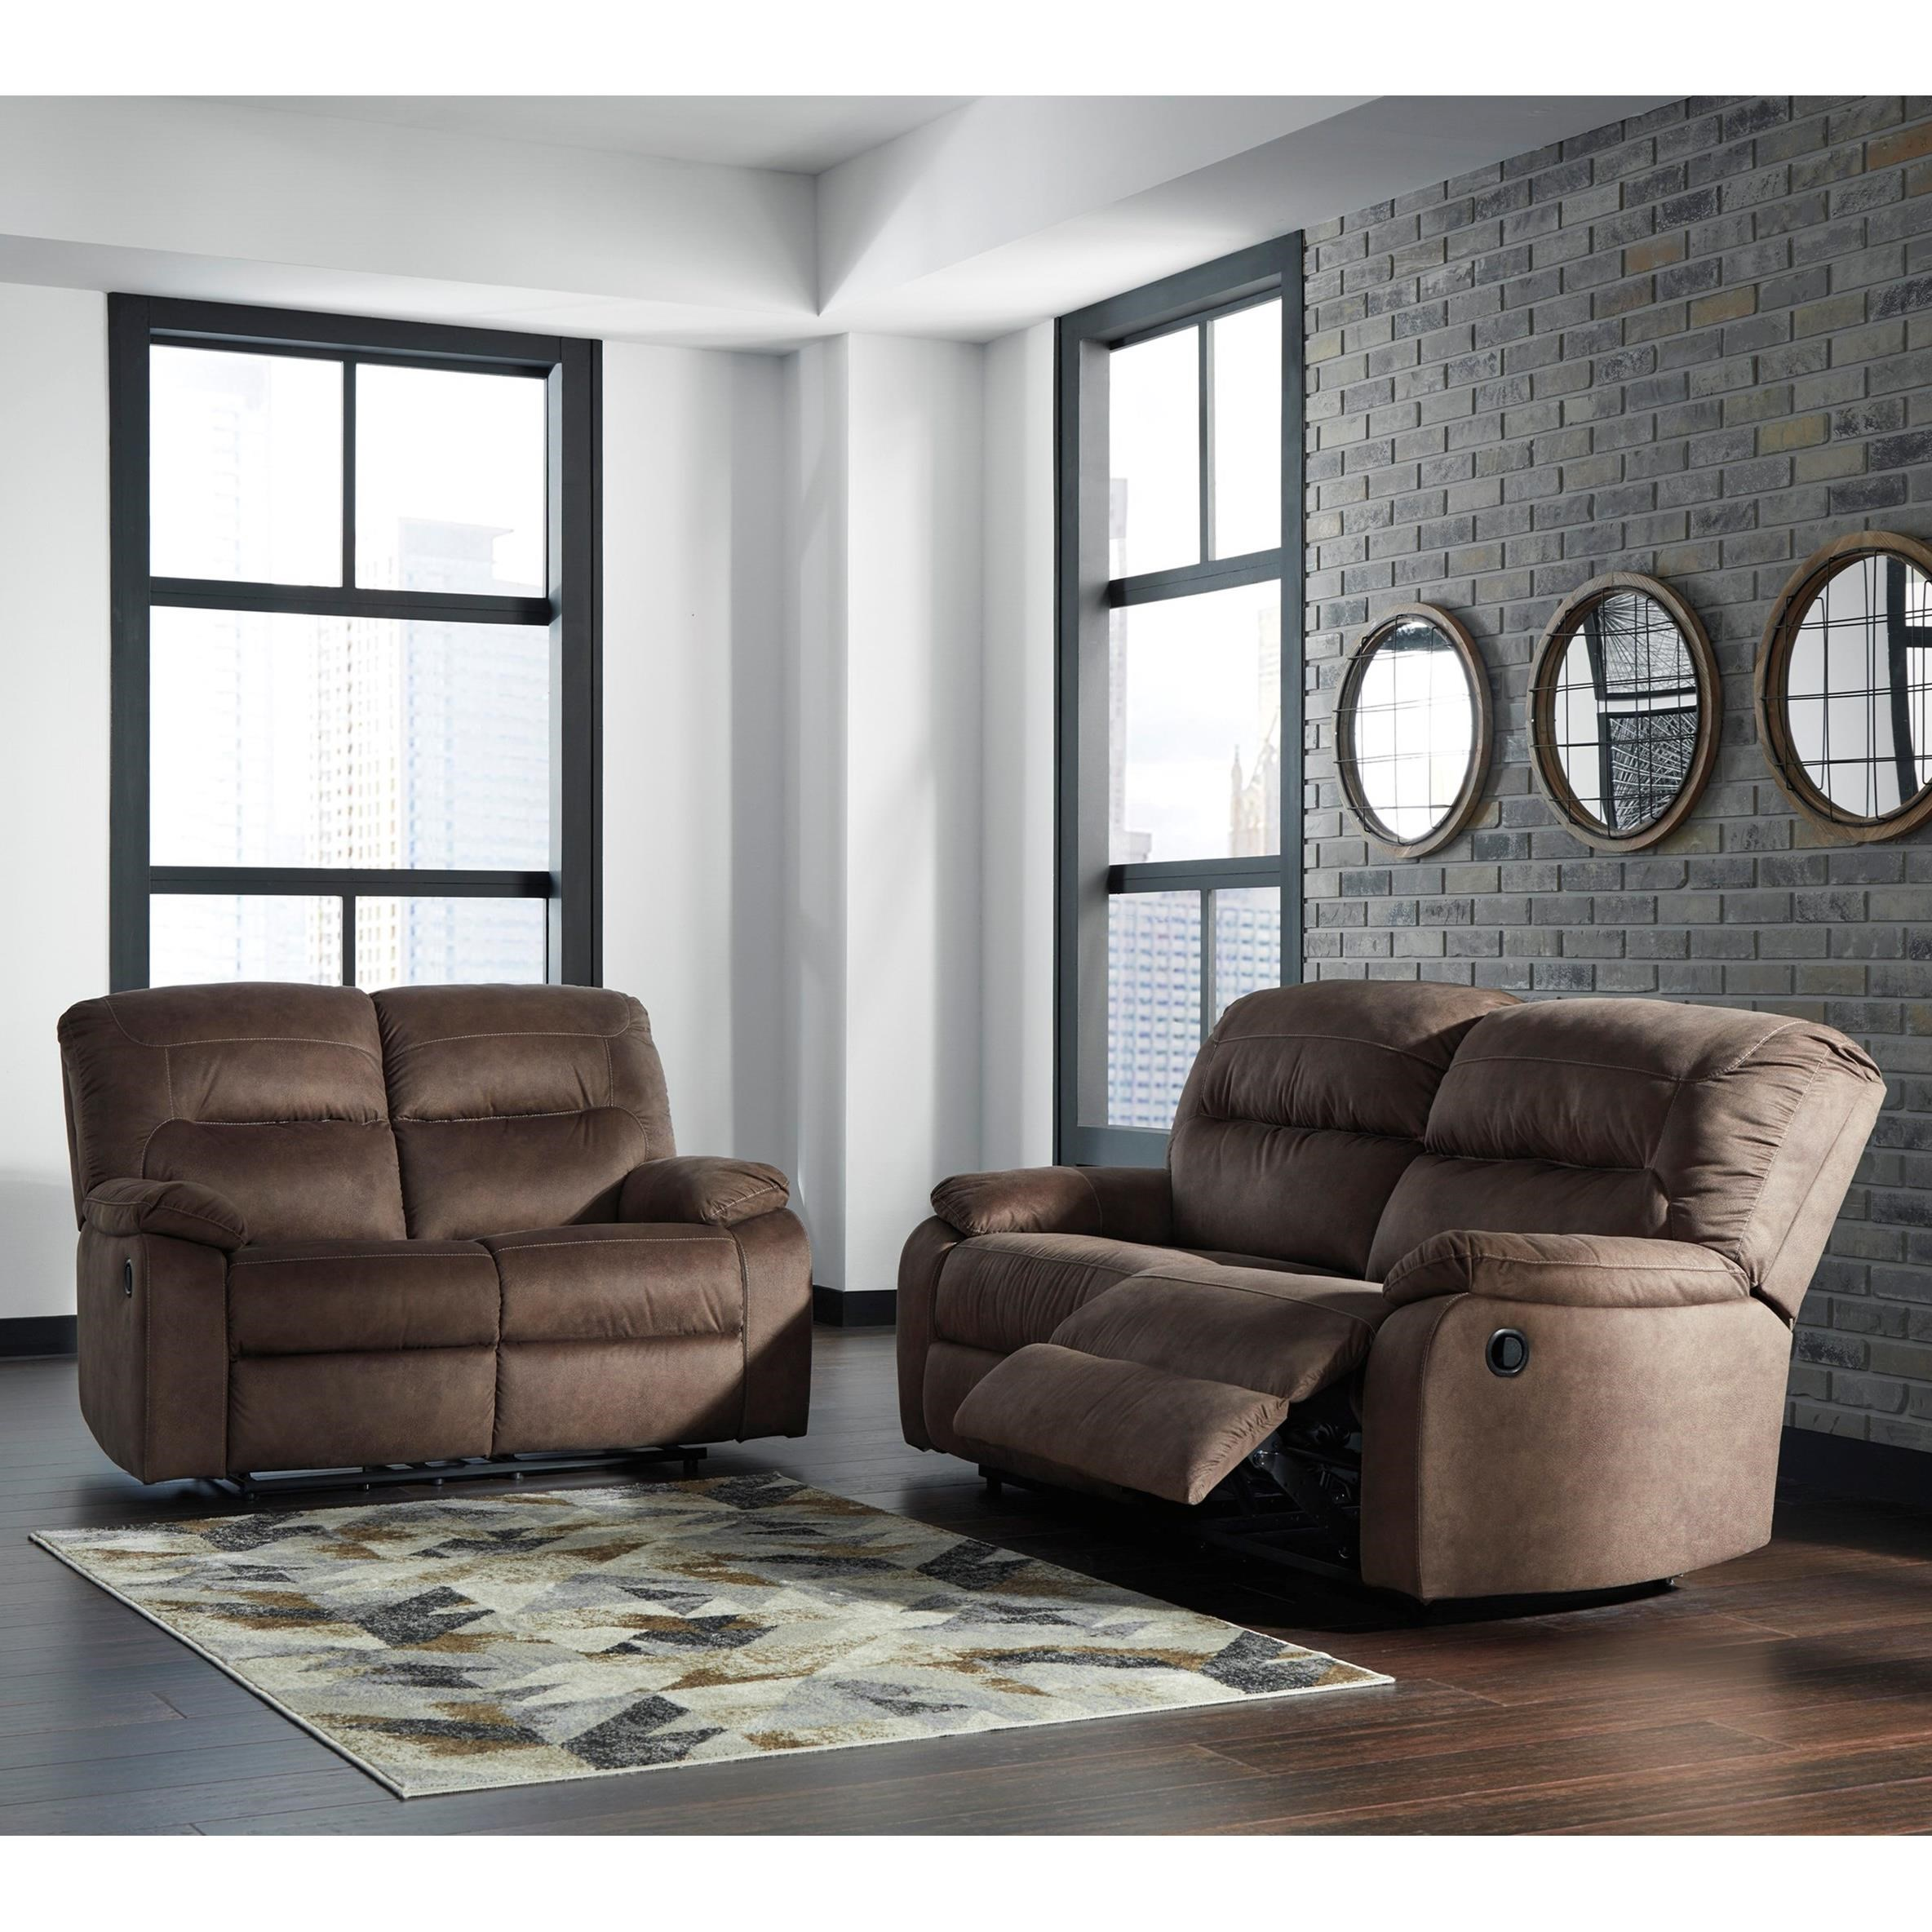 Bolzano Reclining Living Room Group by Signature Design by Ashley at Furniture Barn